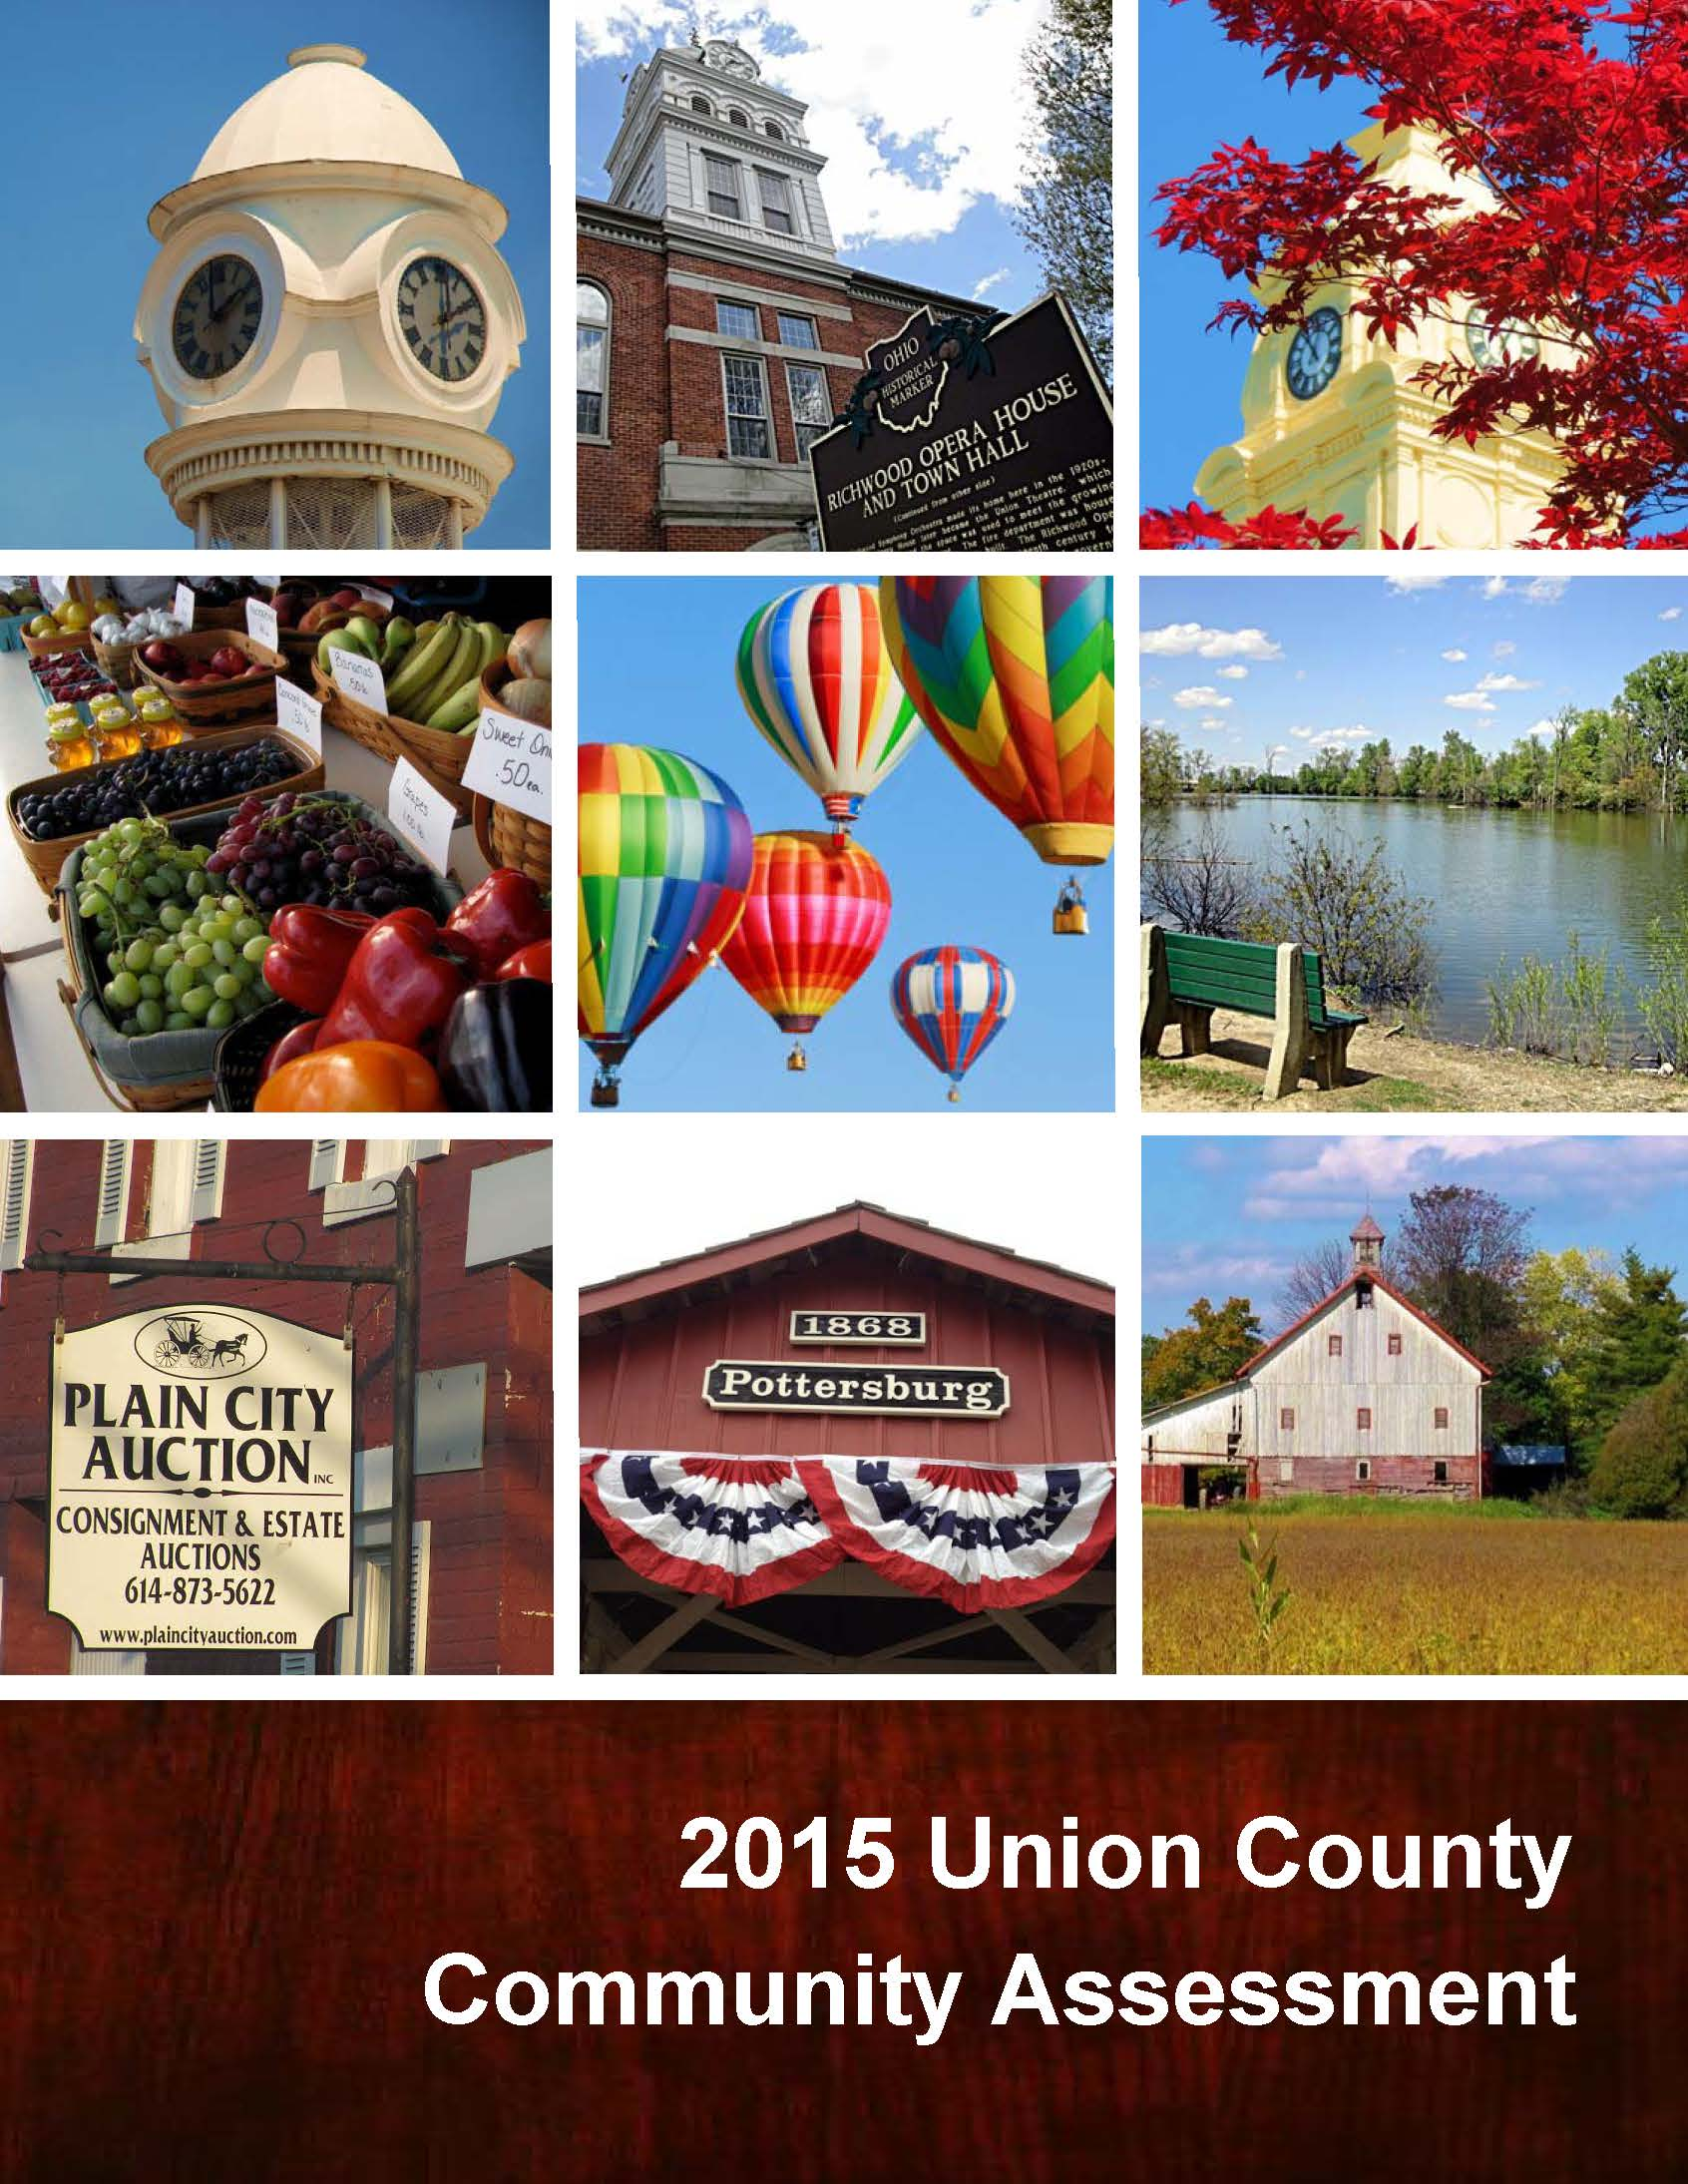 Union County Community Assessment cover image